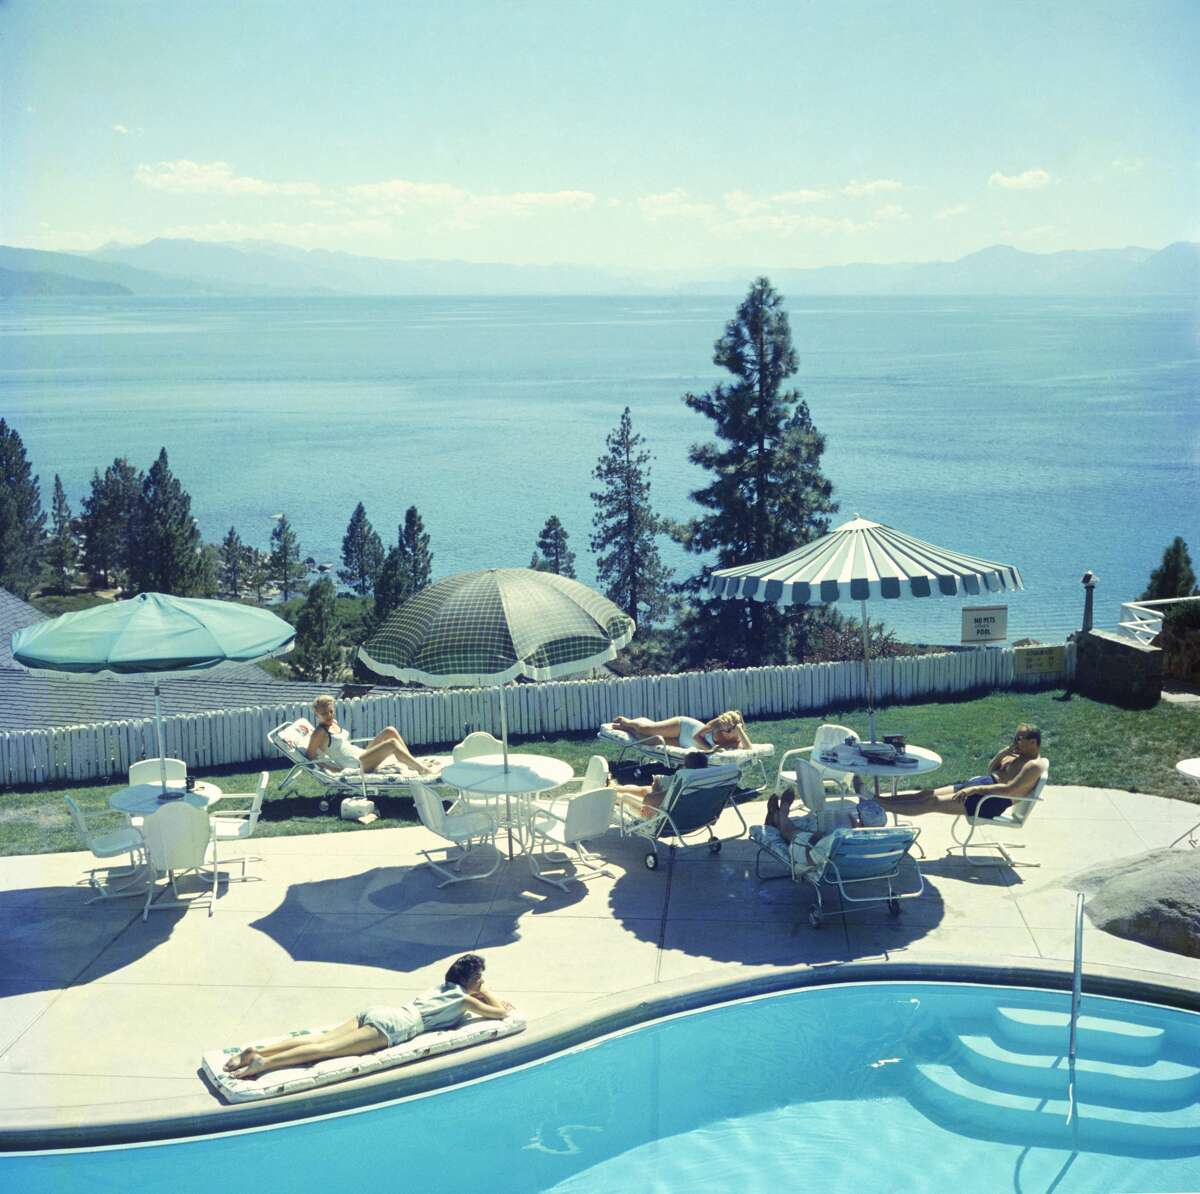 Guests at a swimming pool at the Cal Neva Lodge on the shore of Lake Tahoe in 1959. The resort and casino straddles the border between Nevada and California. It was owned by Frank Sinatra from 1960 to 1968.